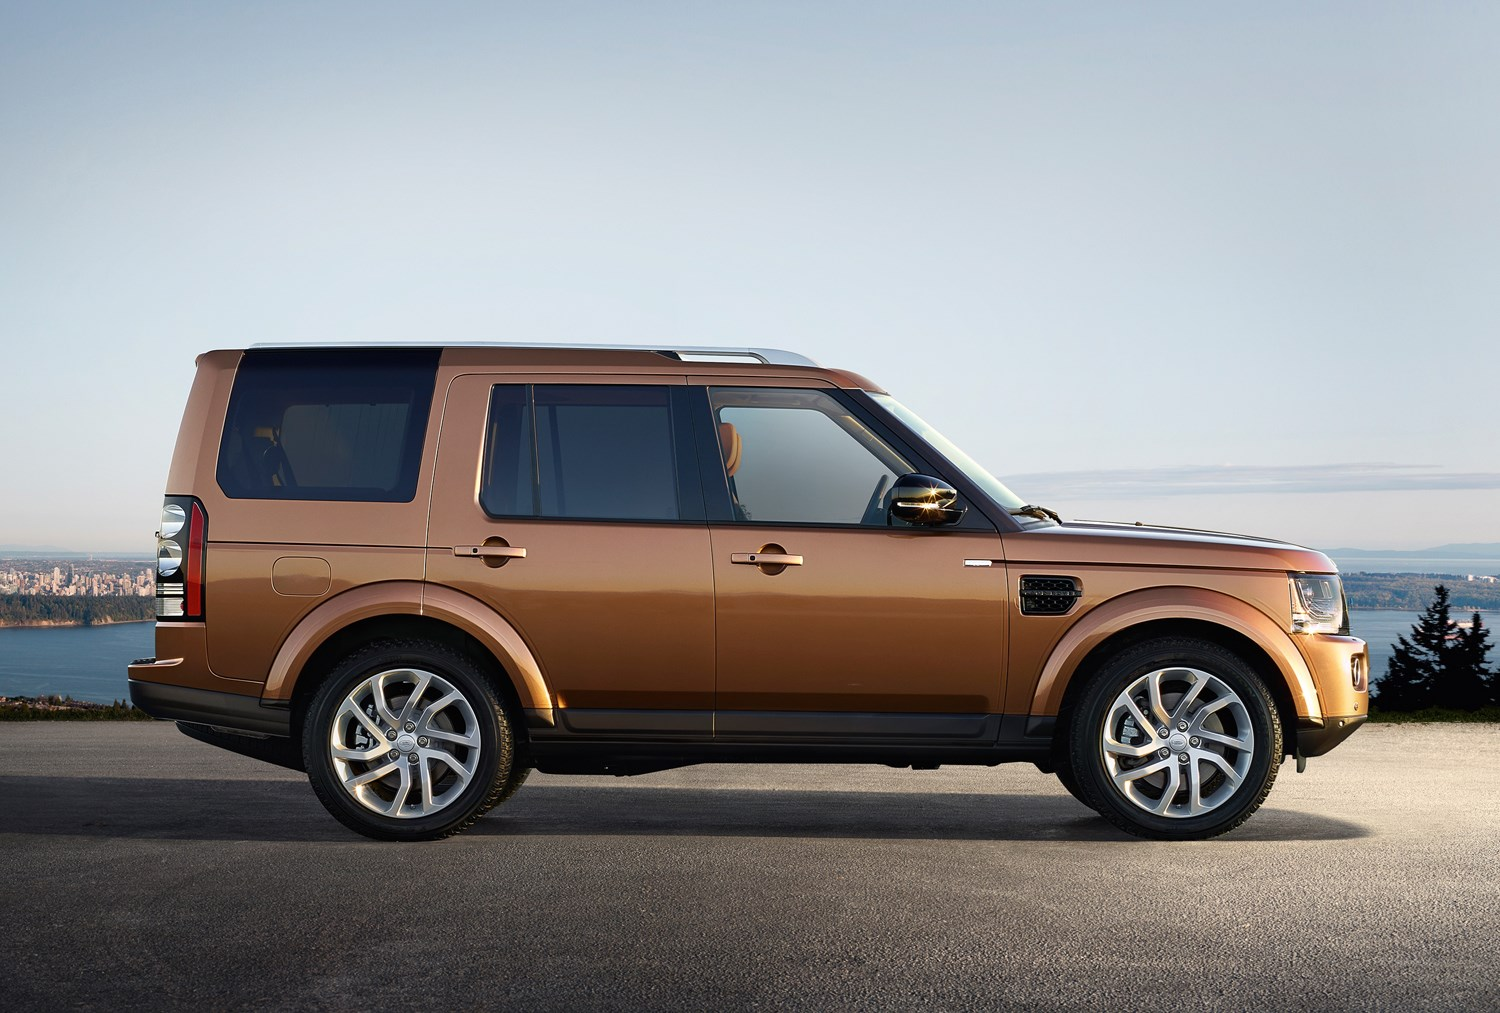 Land Rover Discovery Station Wagon 2004 Photos Parkers